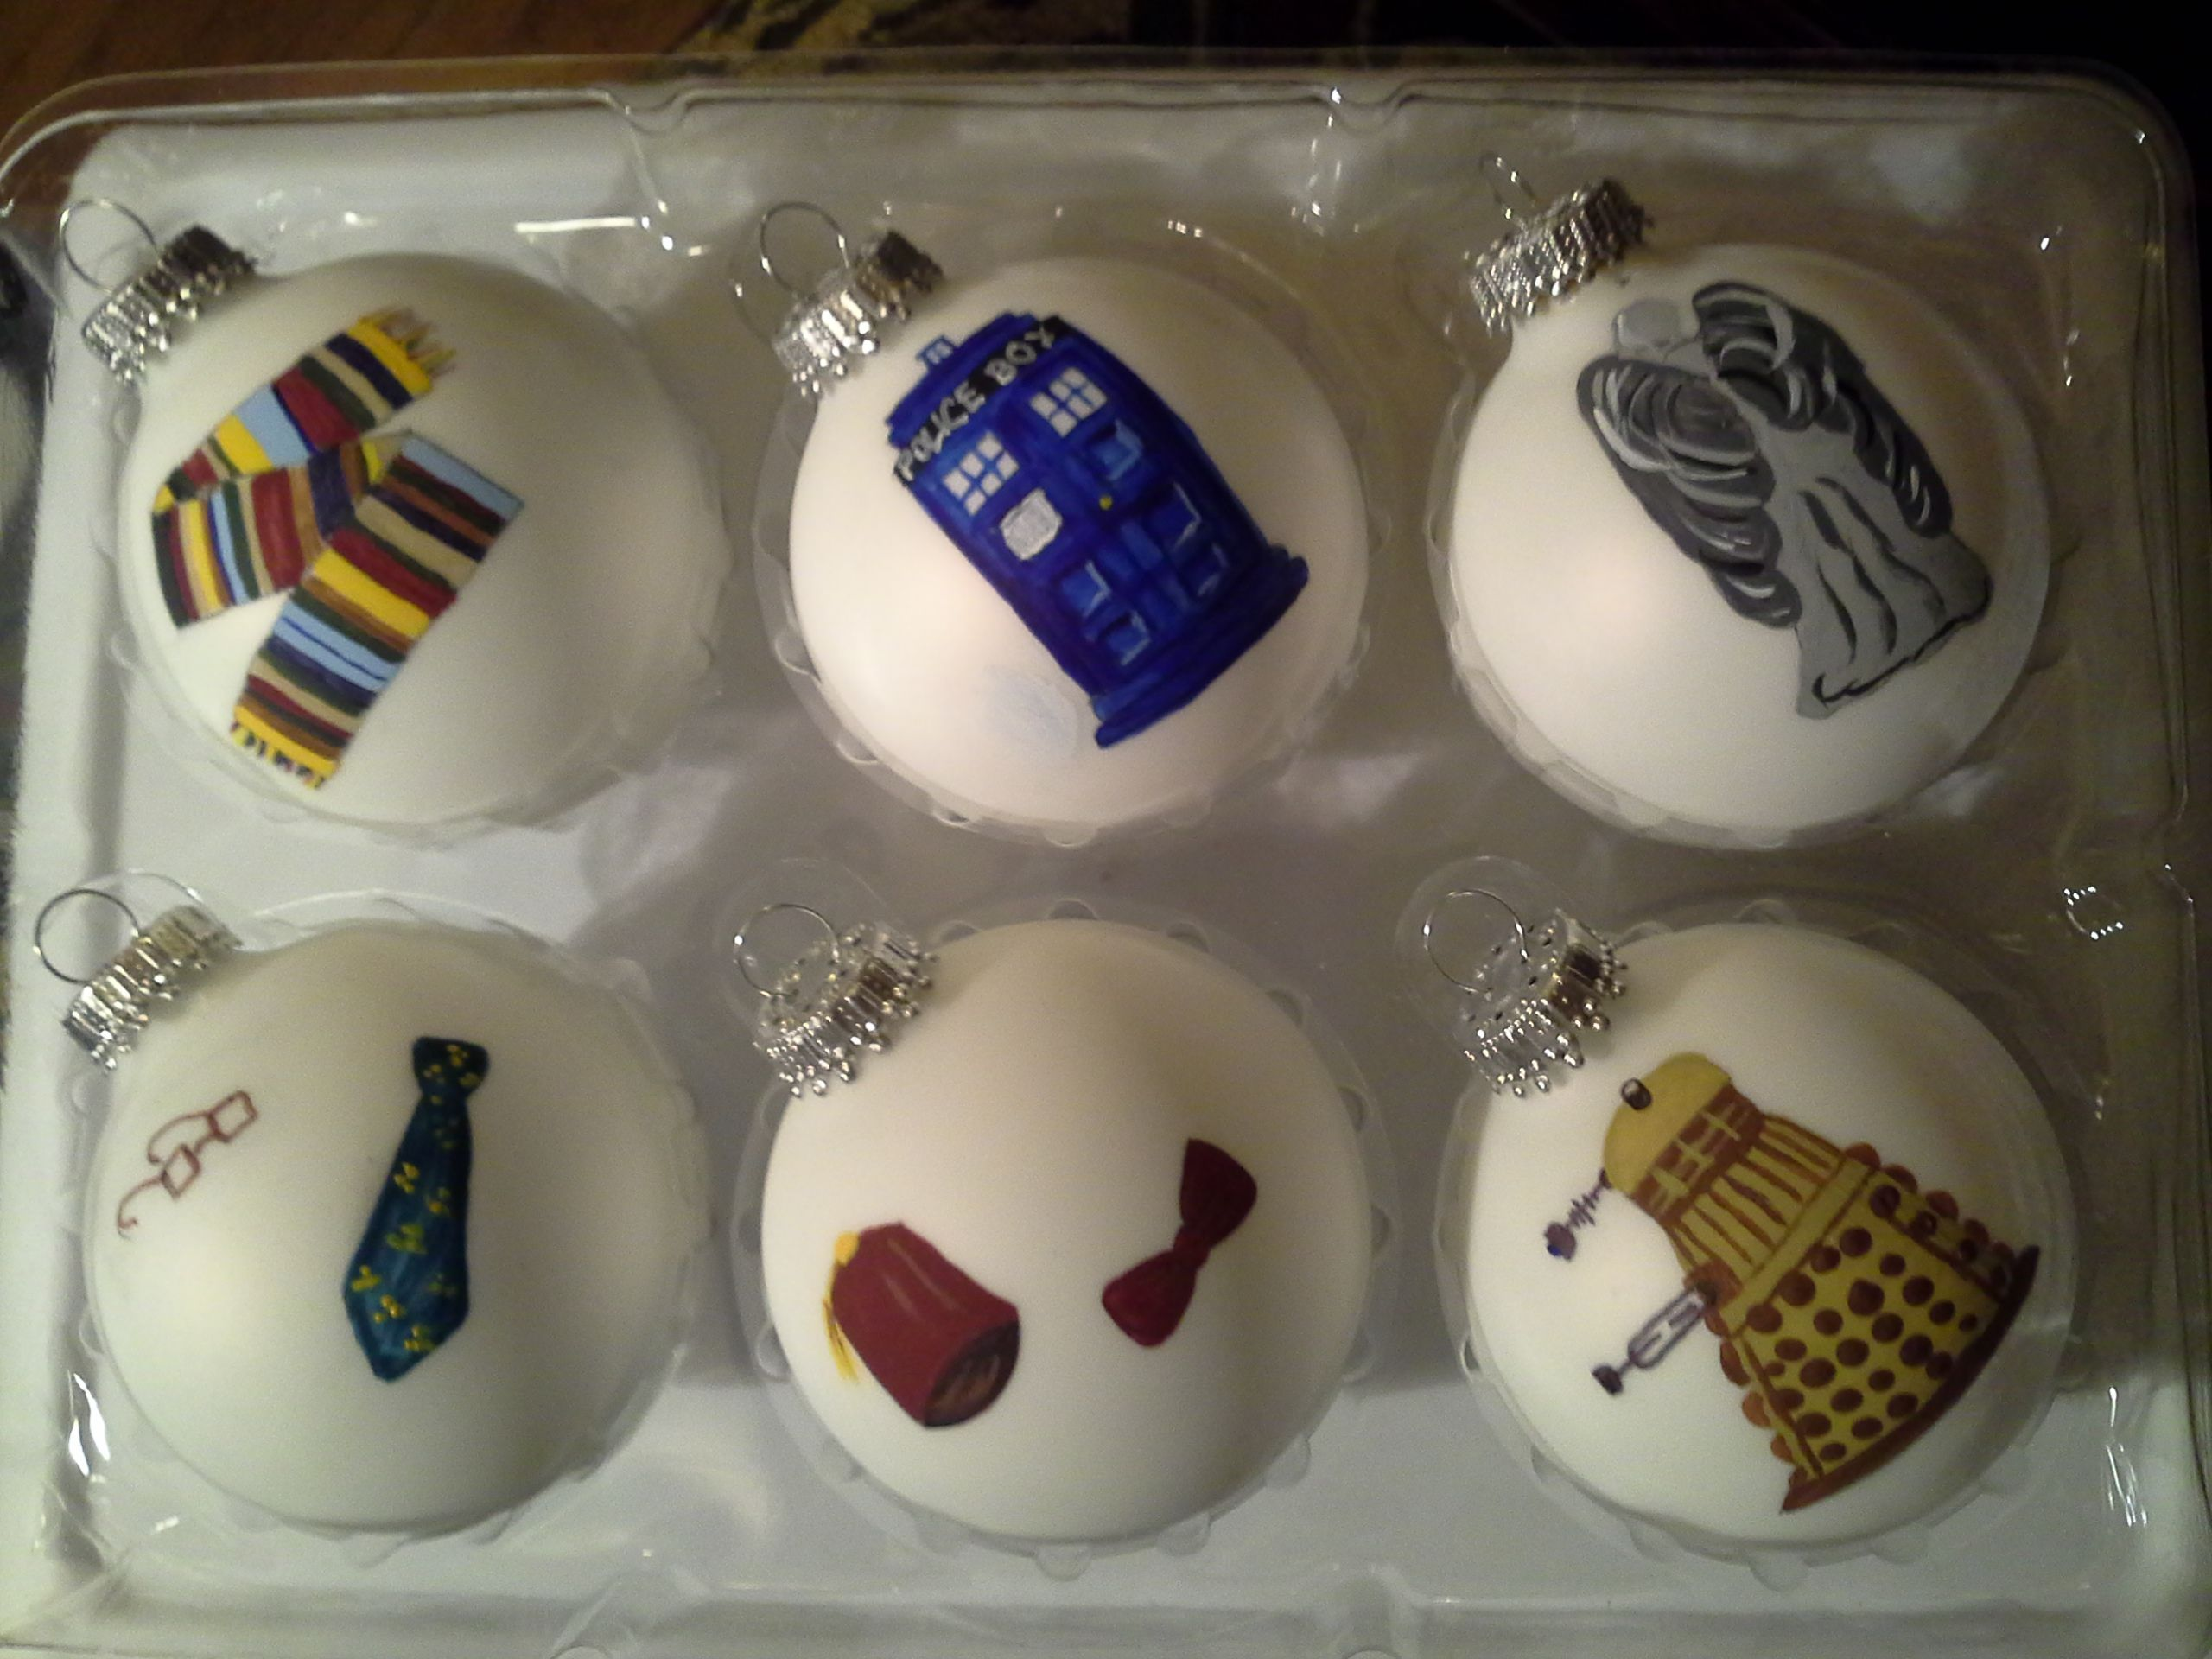 Doctor Who Christmas ornaments.